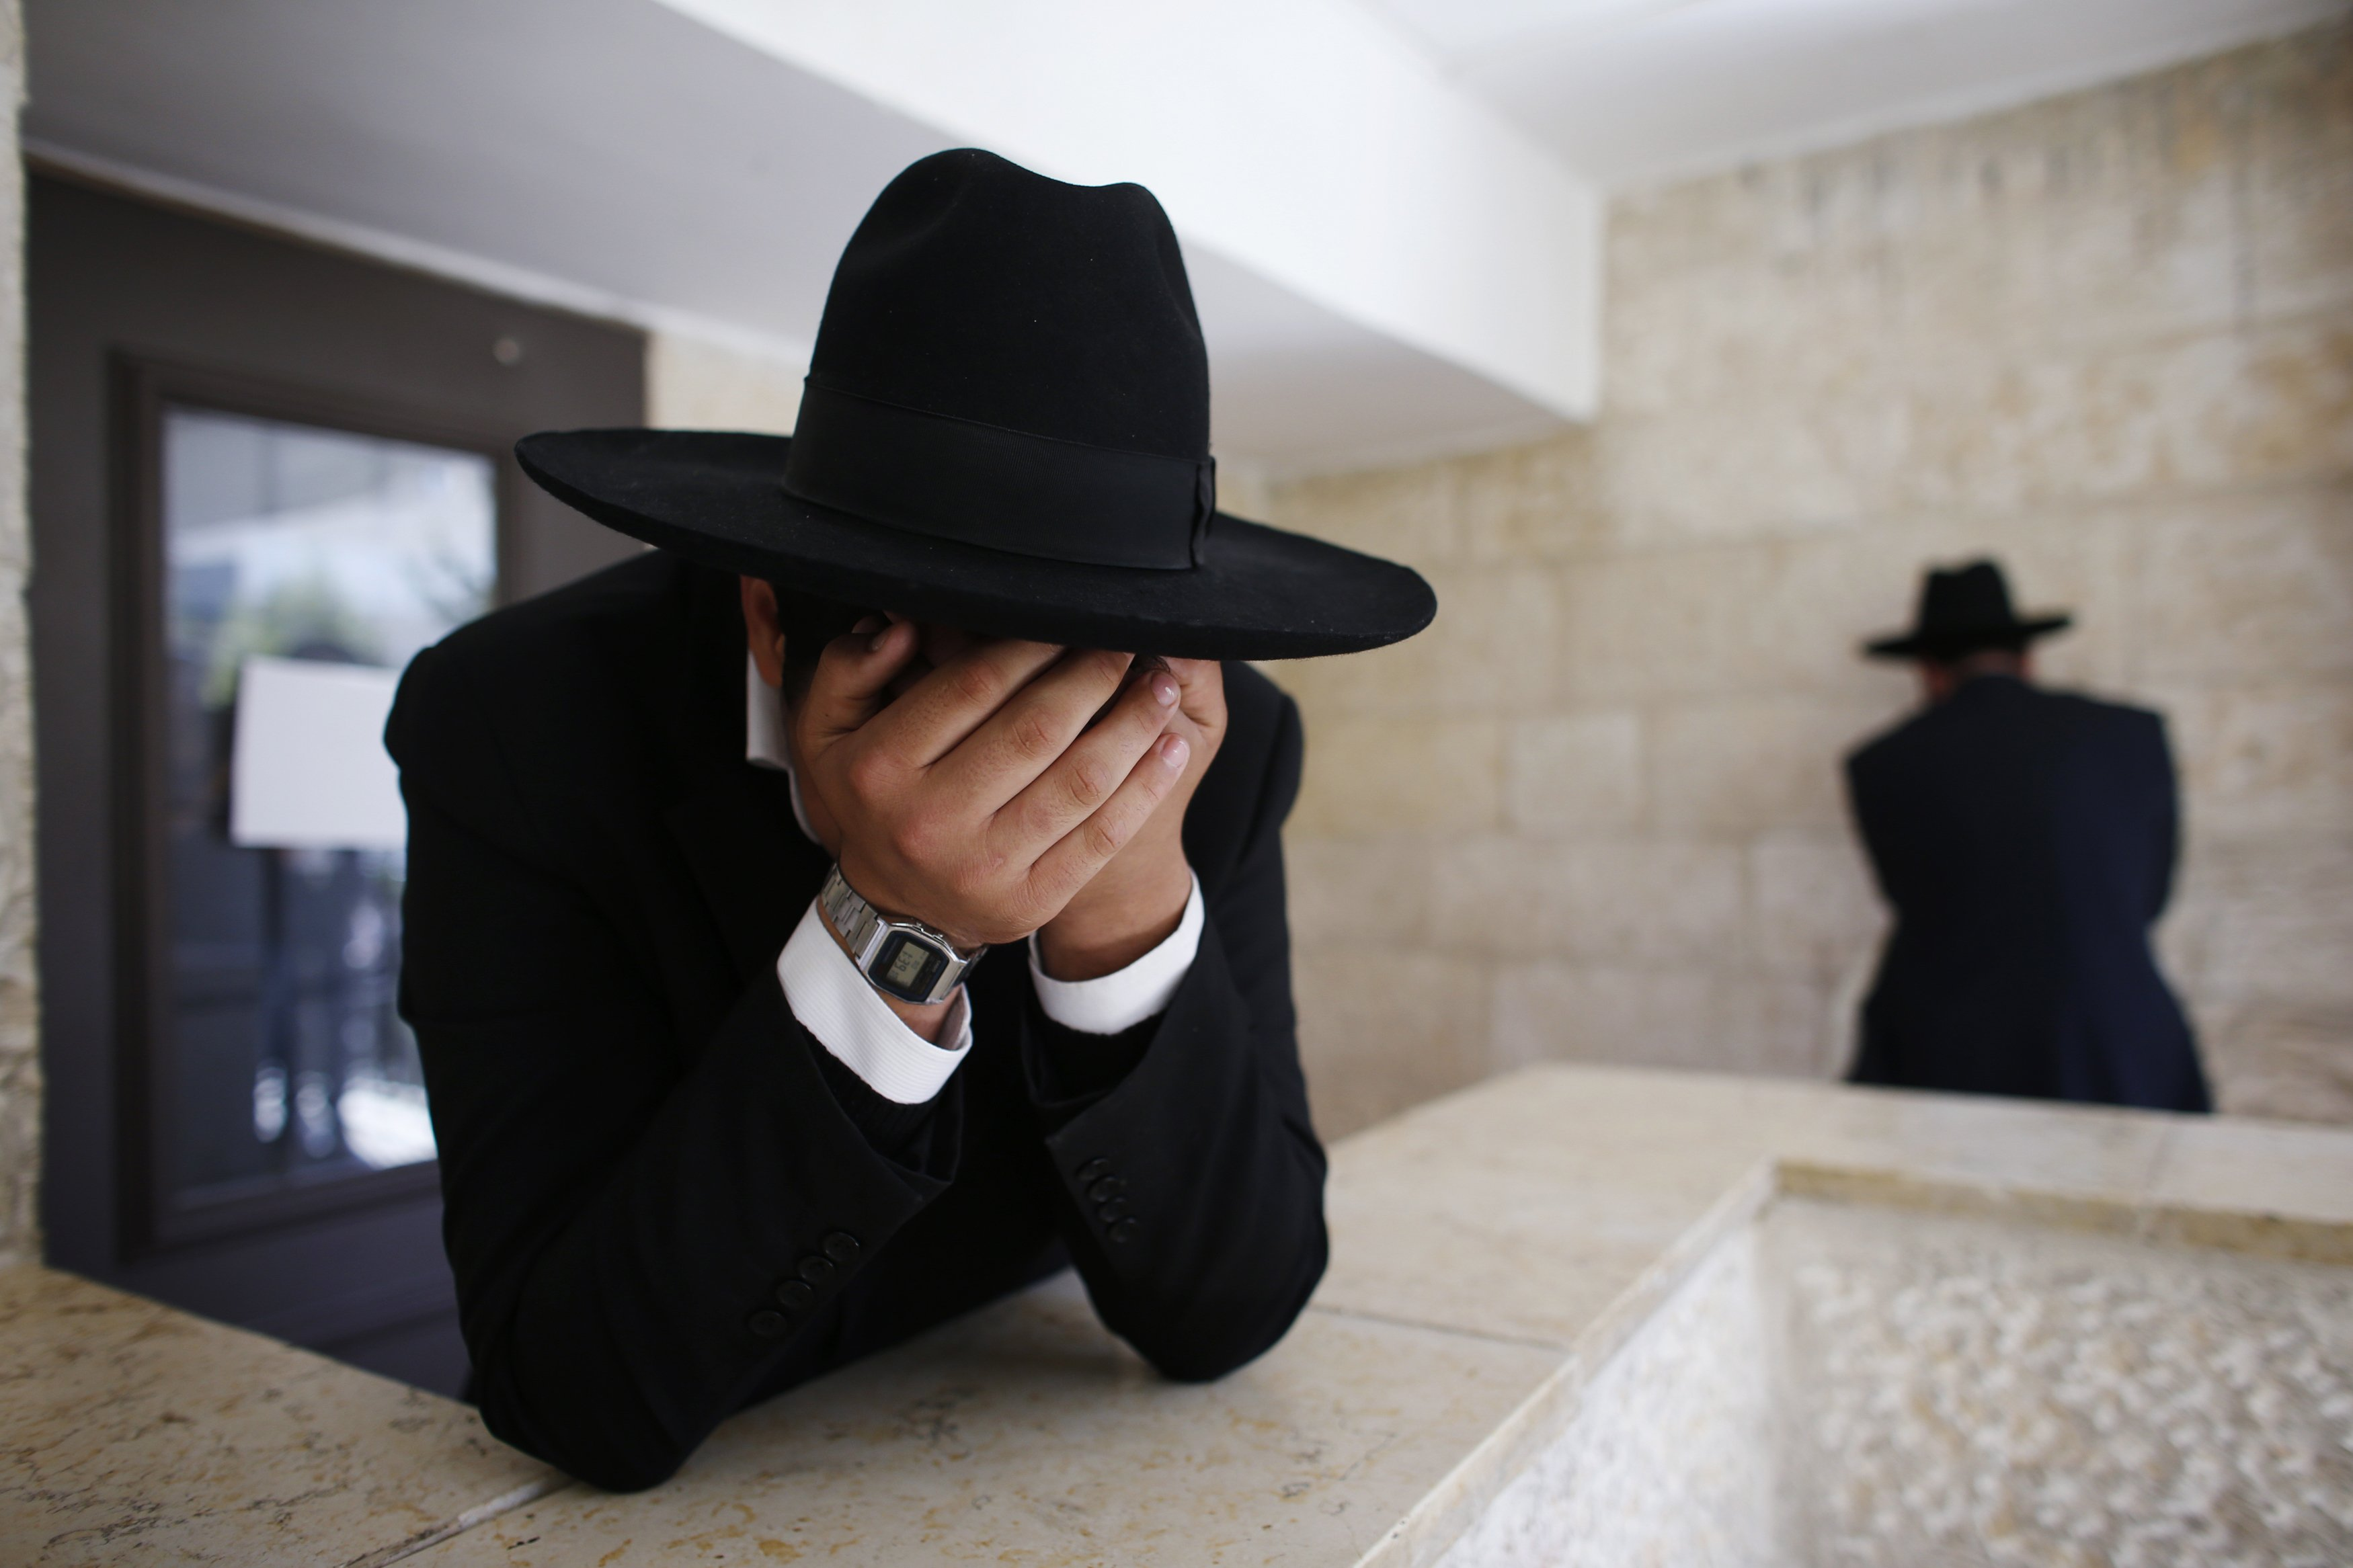 Ultra-Orthodox Jewish men react upon hearing the news about the death of Rabbi Ovadia Yosef, the spiritual mentor of the ultra-religious Shas political party, in Jerusalem October 7, 2013. Yosef, an Iraqi-born sage who turned an Israeli underclass of Sephardic Jews of Middle Eastern heritage into a powerful political force, died on Monday at the age of 93, plunging masses of followers into mourning. REUTERS/Ronen Zvulun (JERUSALEM - Tags: RELIGION OBITUARY TPX IMAGES OF THE DAY)